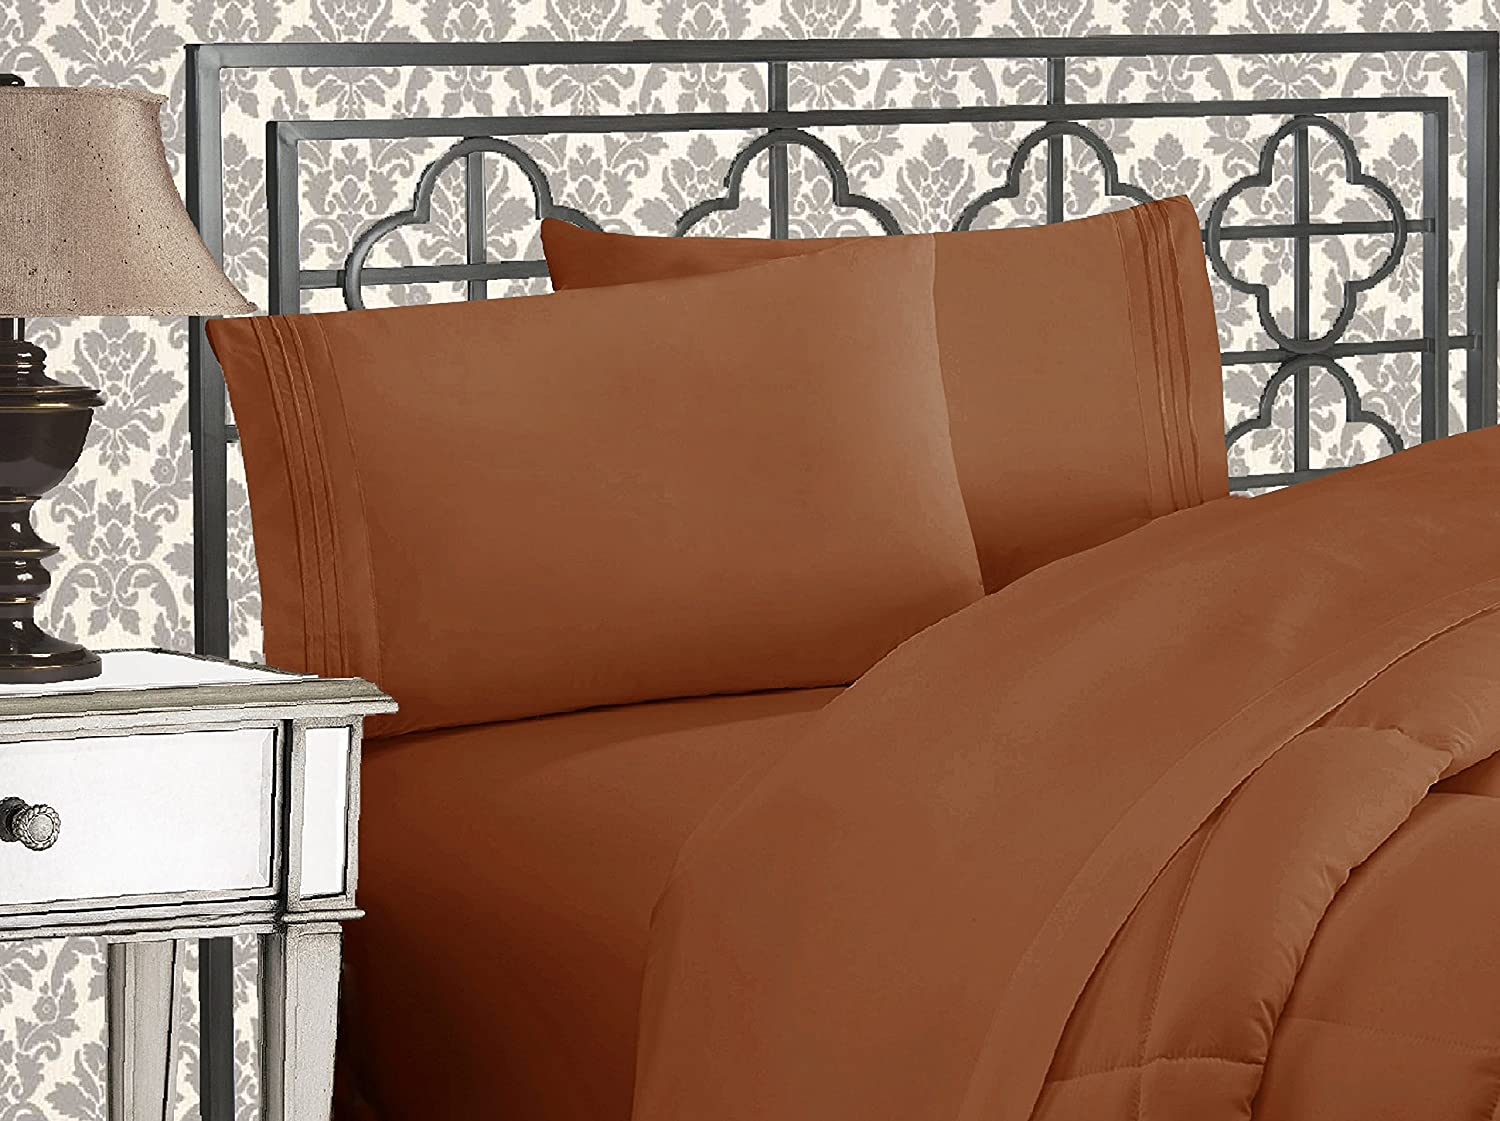 Elegant Comfort 81RW-3Line-FU-Bronze Luxurious 1500 Thread Count Egyptian Three Line Embroidered Softest Premium Hotel Quality 4-Piece Bed Sheet Set, Full, Bronze